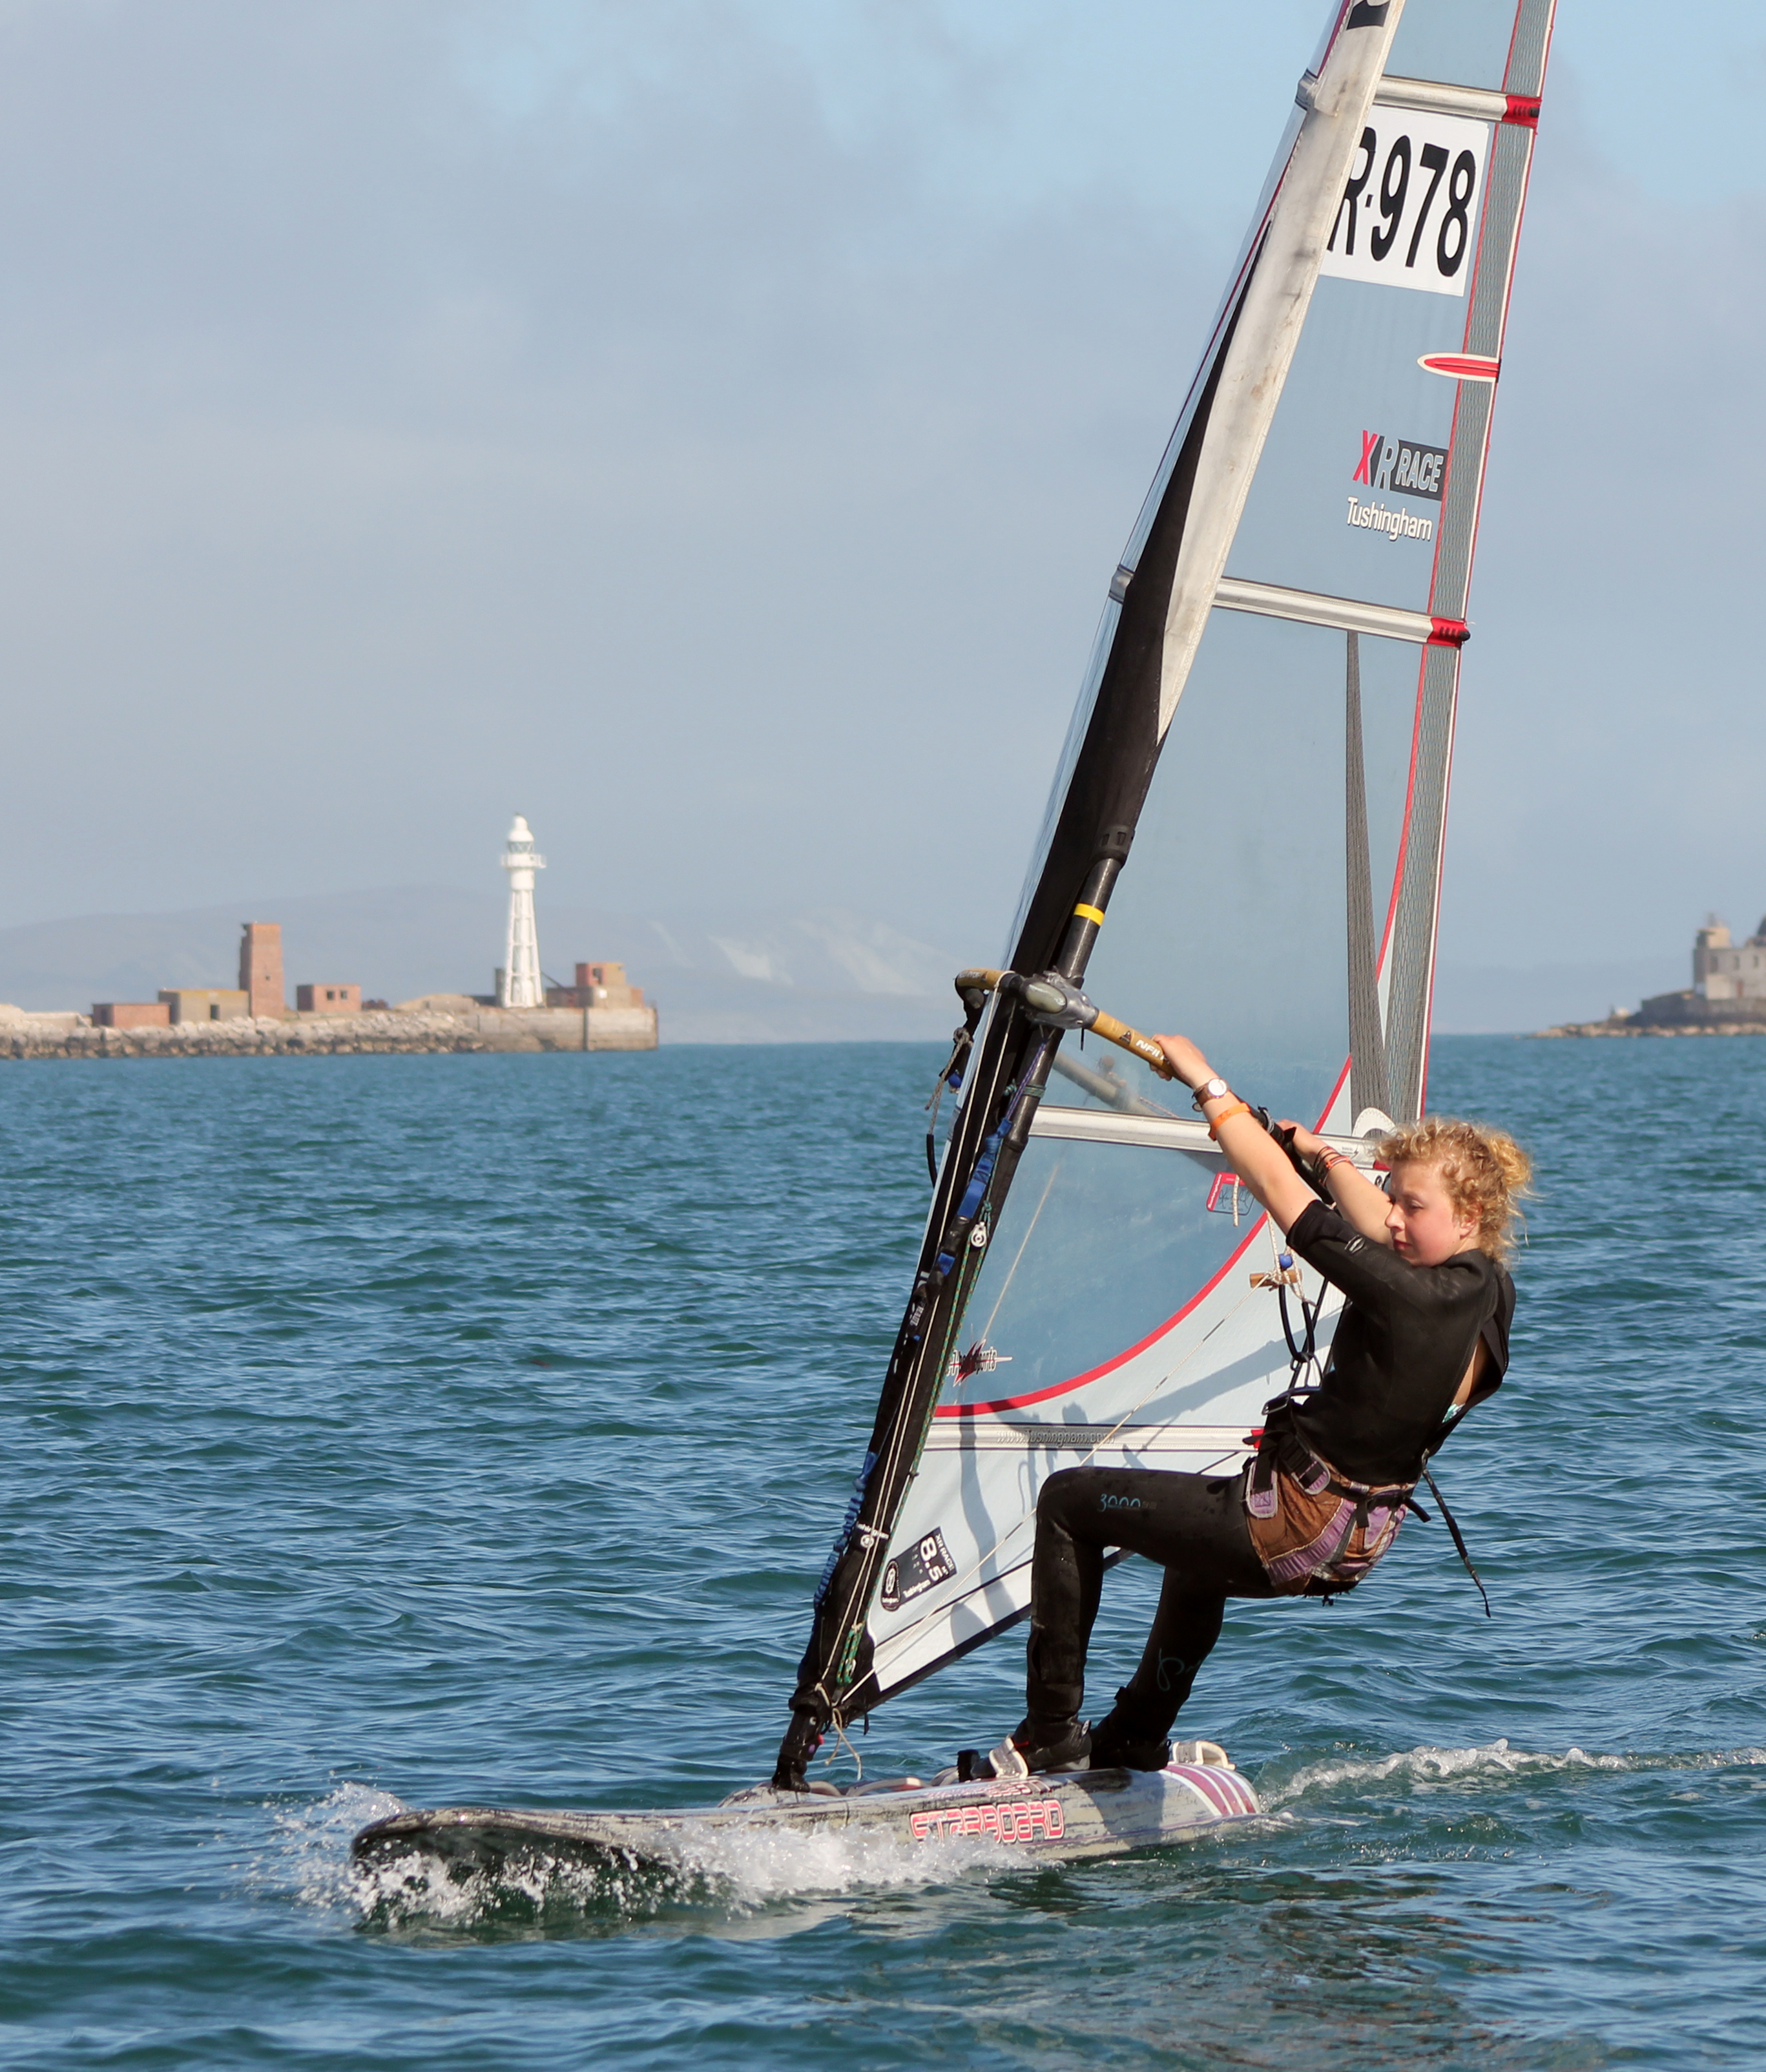 Raceboard windsurfing revival – now's the time